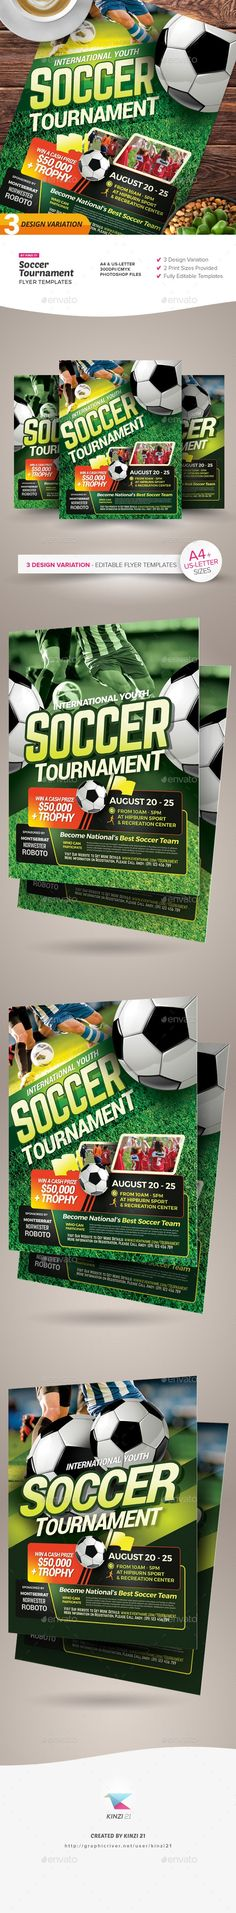 Buy Soccer Tournament Flyer Templates by on GraphicRiver. Soccer Tournament Flyer Templates A sport flyer template set designed to promote a soccer tournament. With this pack,. Baseball Tournament, Baseball League, Sports Flyer, Soccer World, Flyer Template, Color Schemes, Print Design, Templates, Lettering